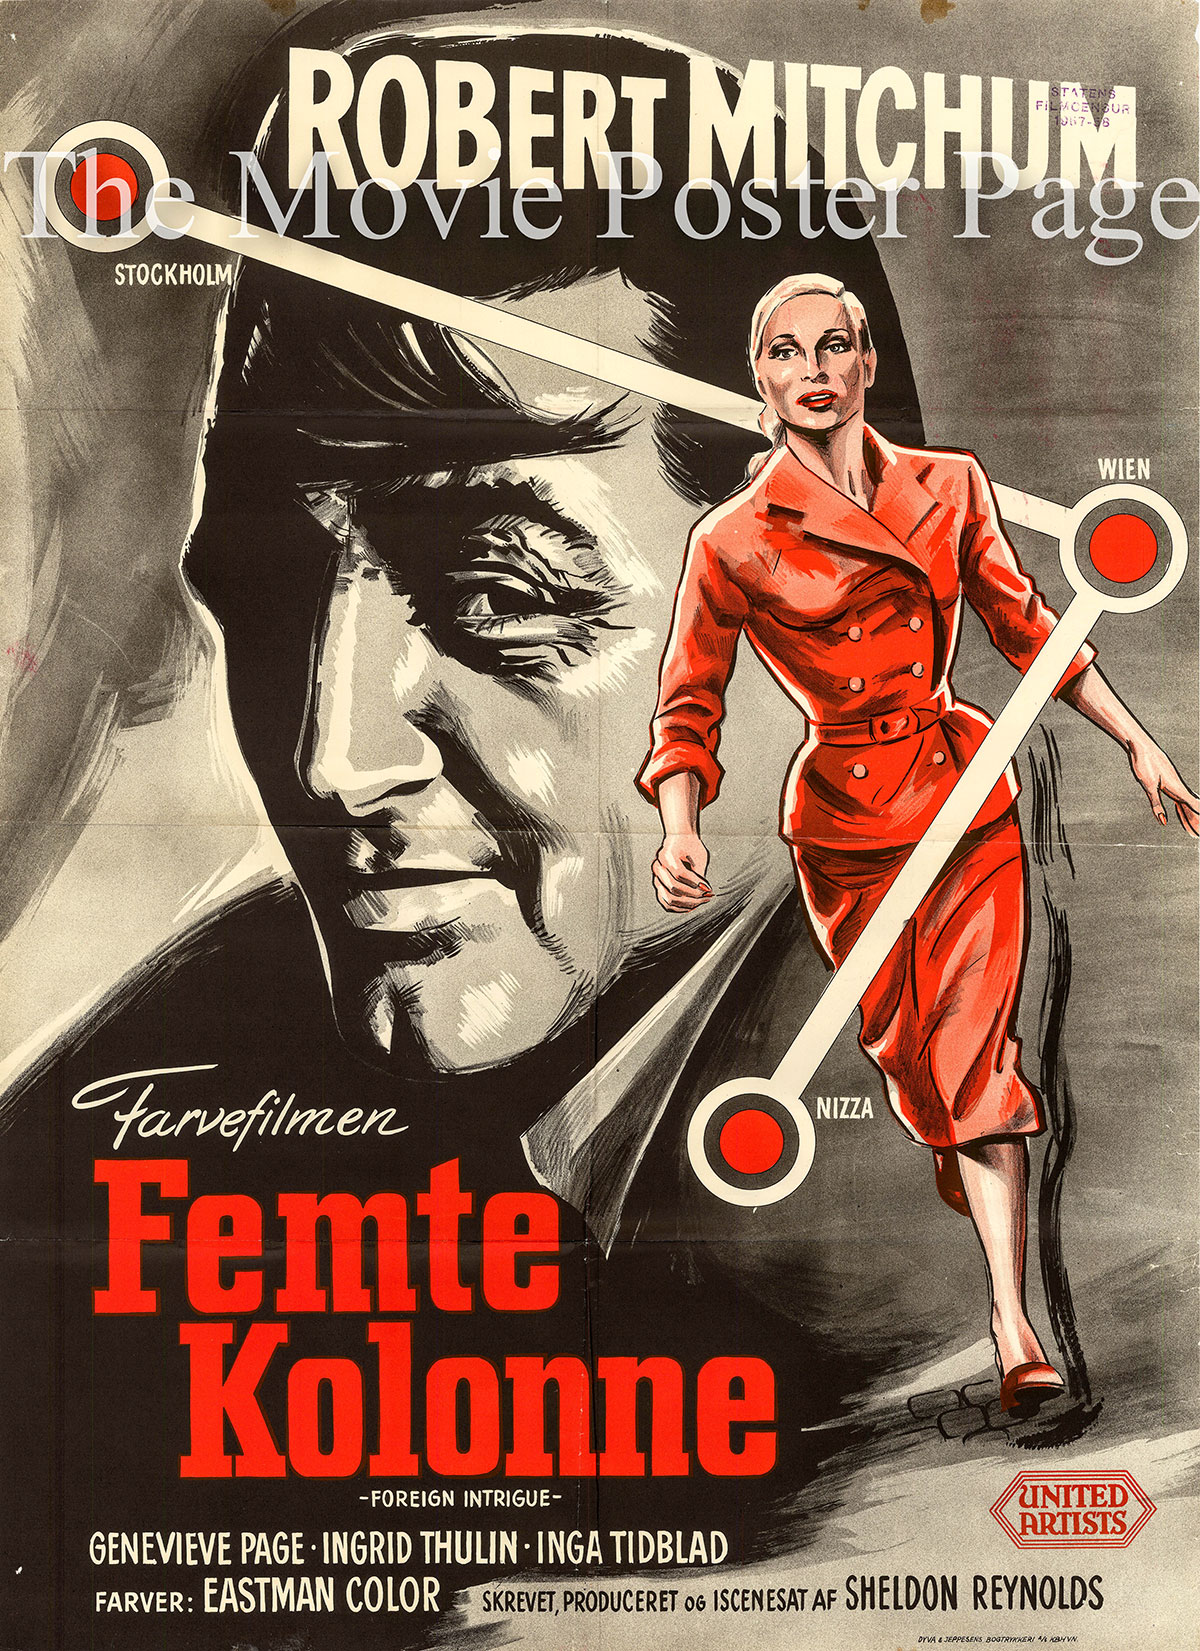 Pictured is a Danish promotional poster for the 1956 Sheldon Reynolds film Foreign Intrigue starring Robert Mitchum.